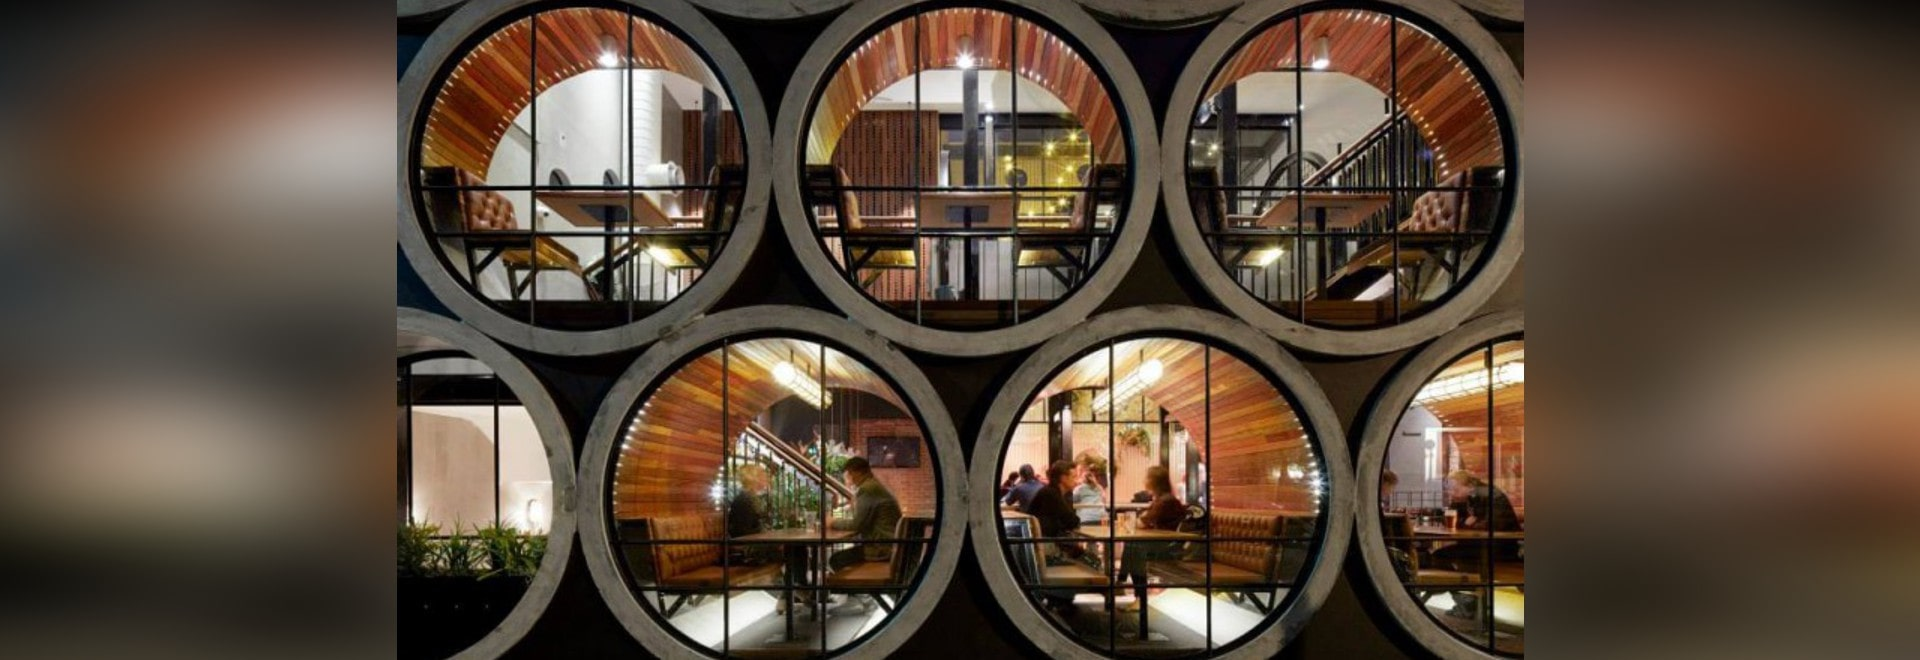 Hôtel de Prahran à Melbourne, Australie (conception de Techne Architects)